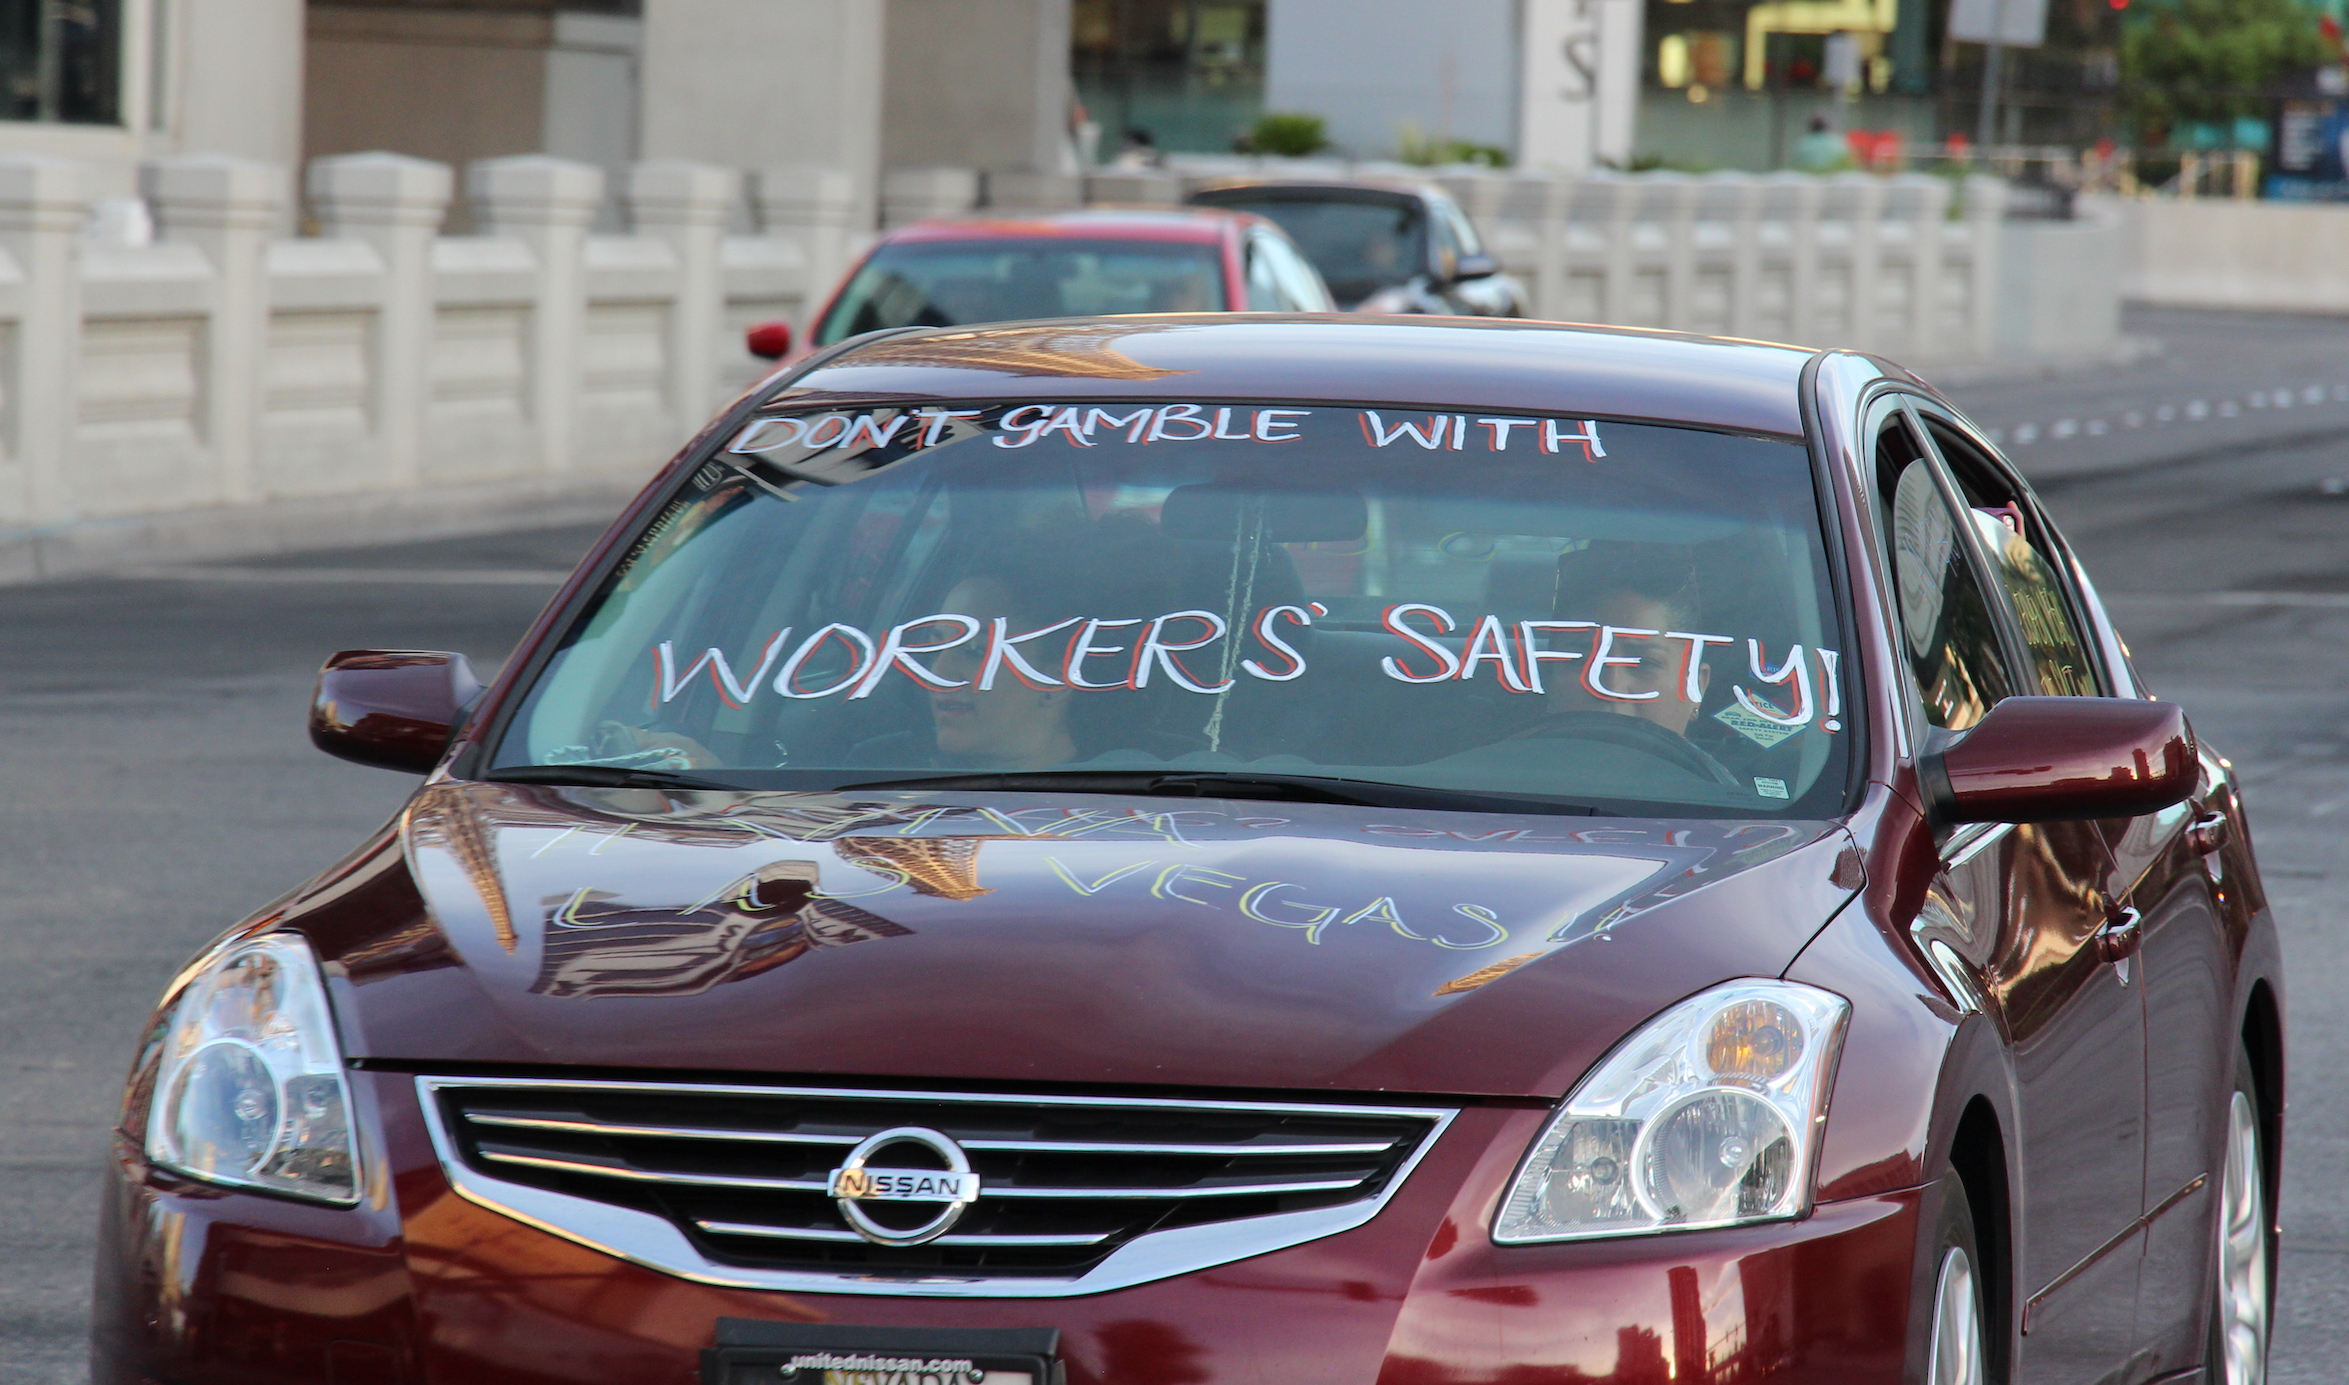 """Casino workers in vehicle with words on windshield that read, """"Don't gamble with workers' safety."""""""